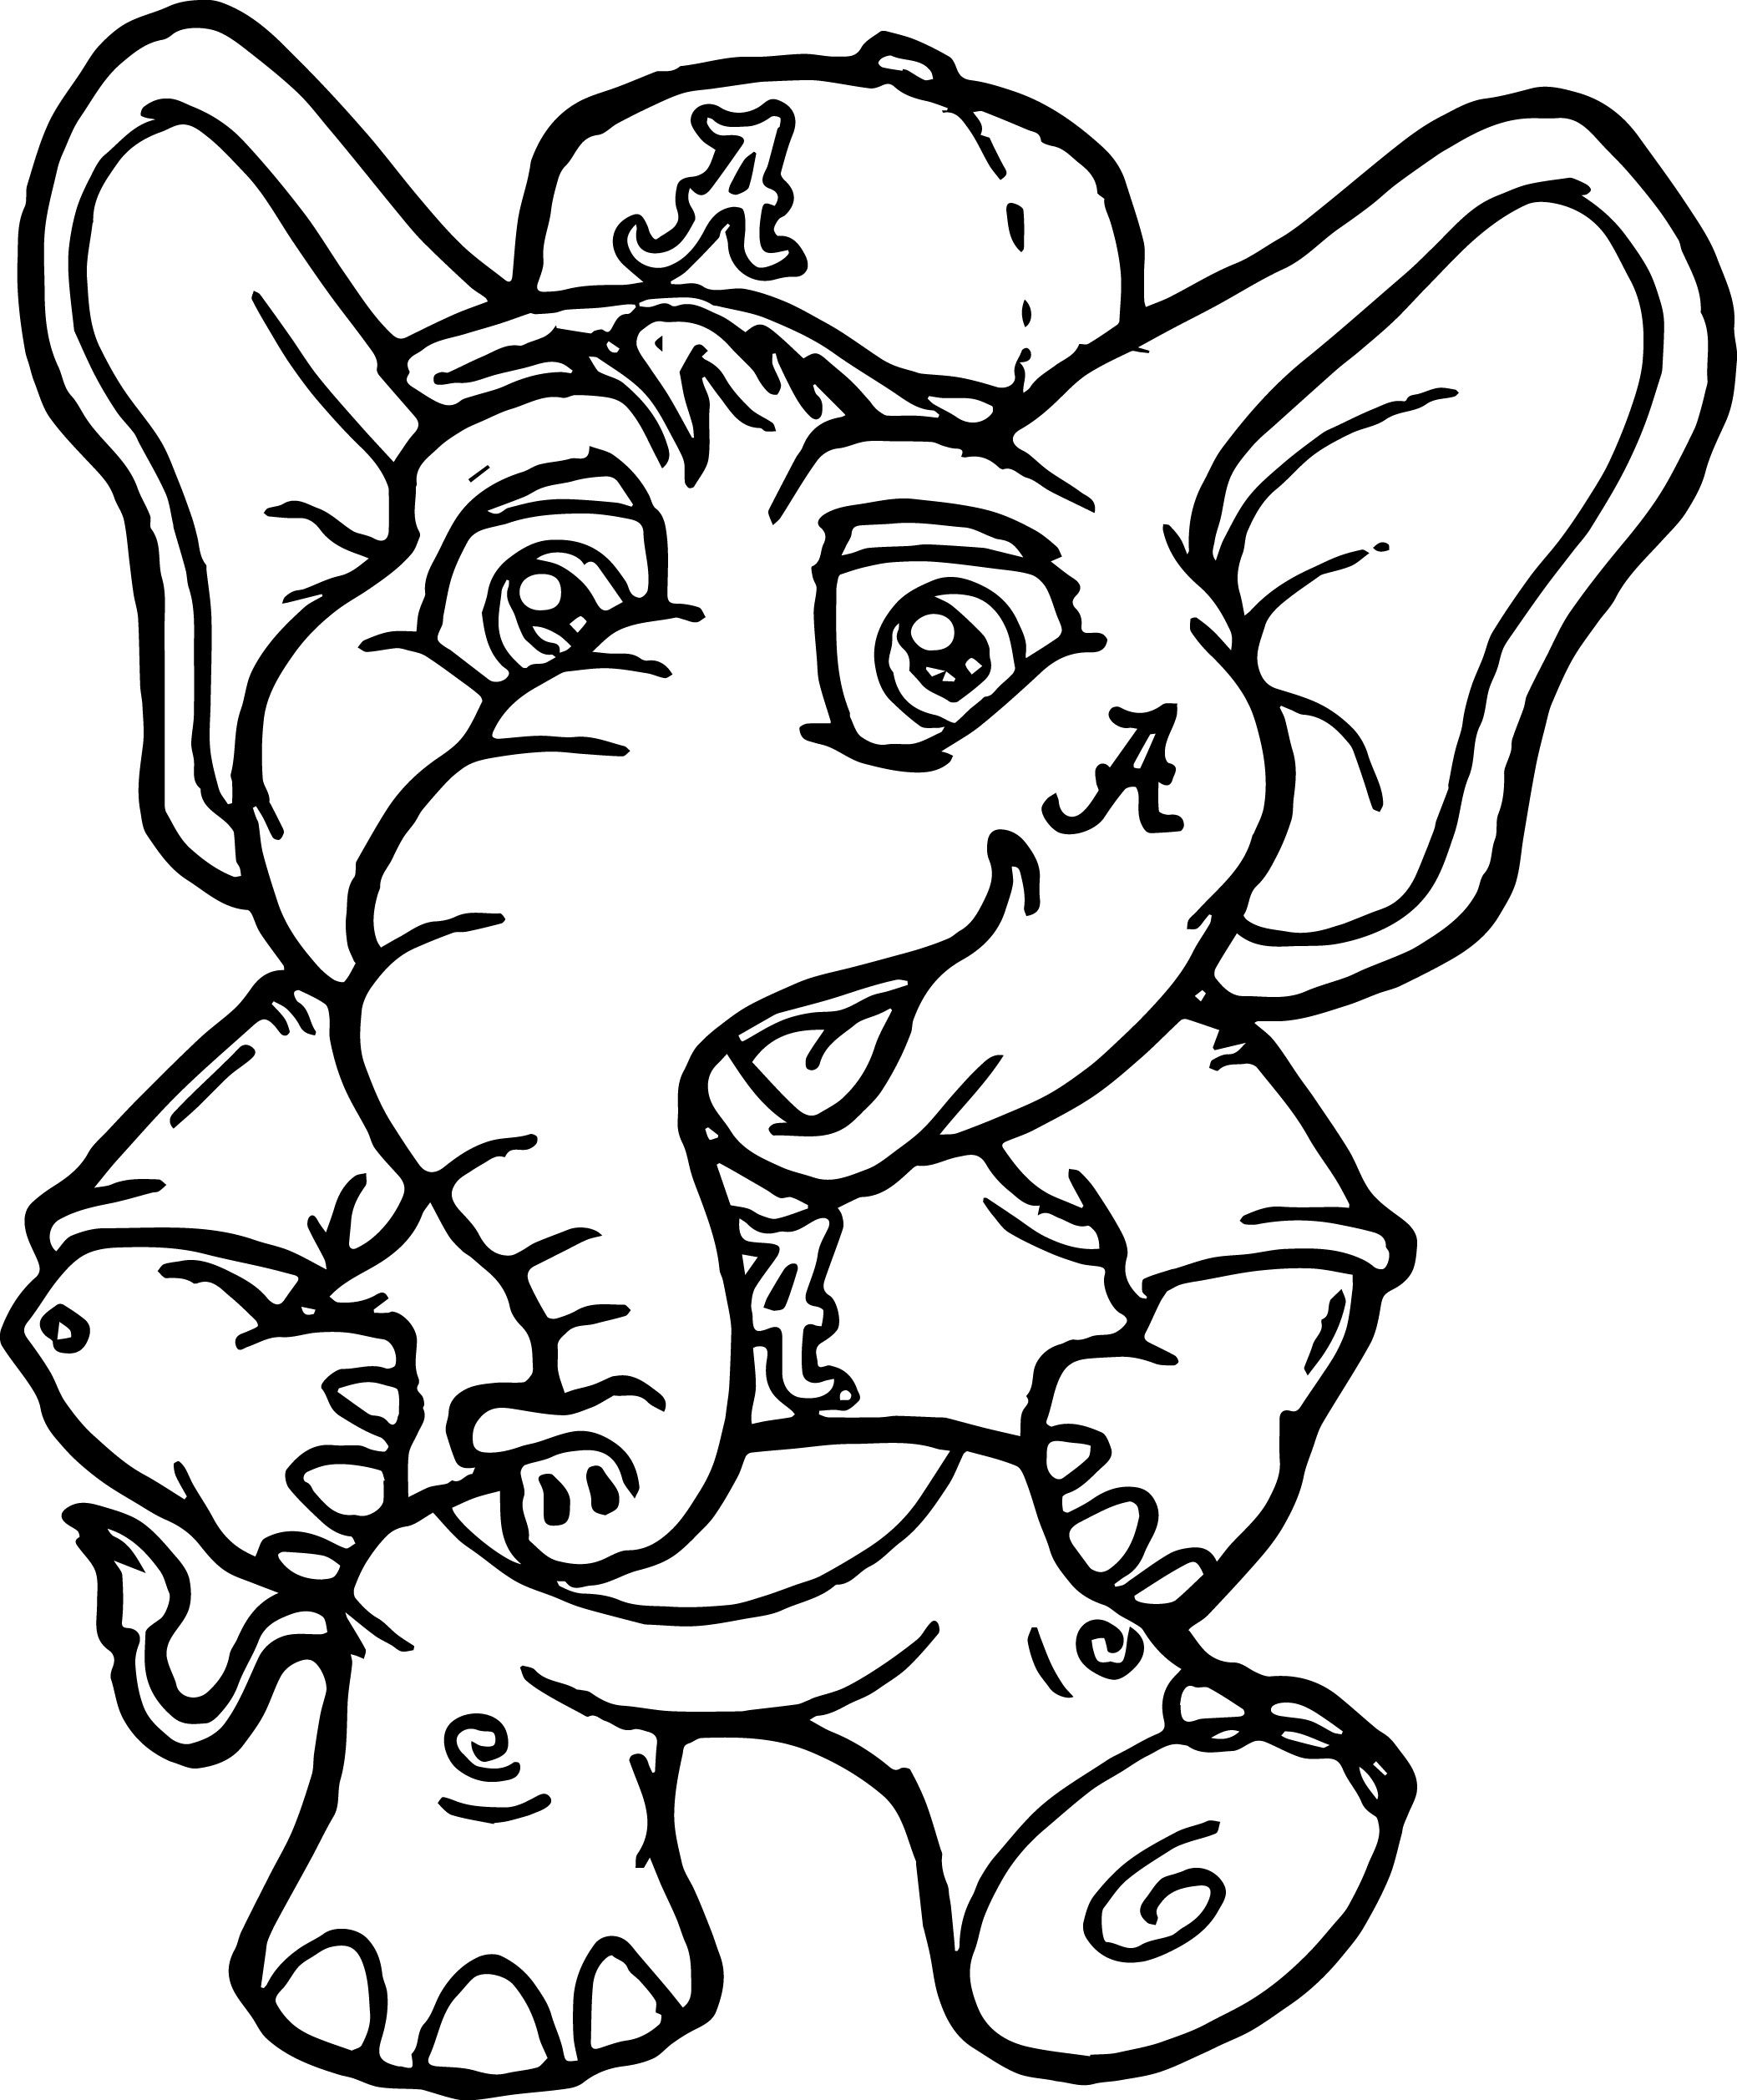 alabama football coloring pages - Football Coloring Page